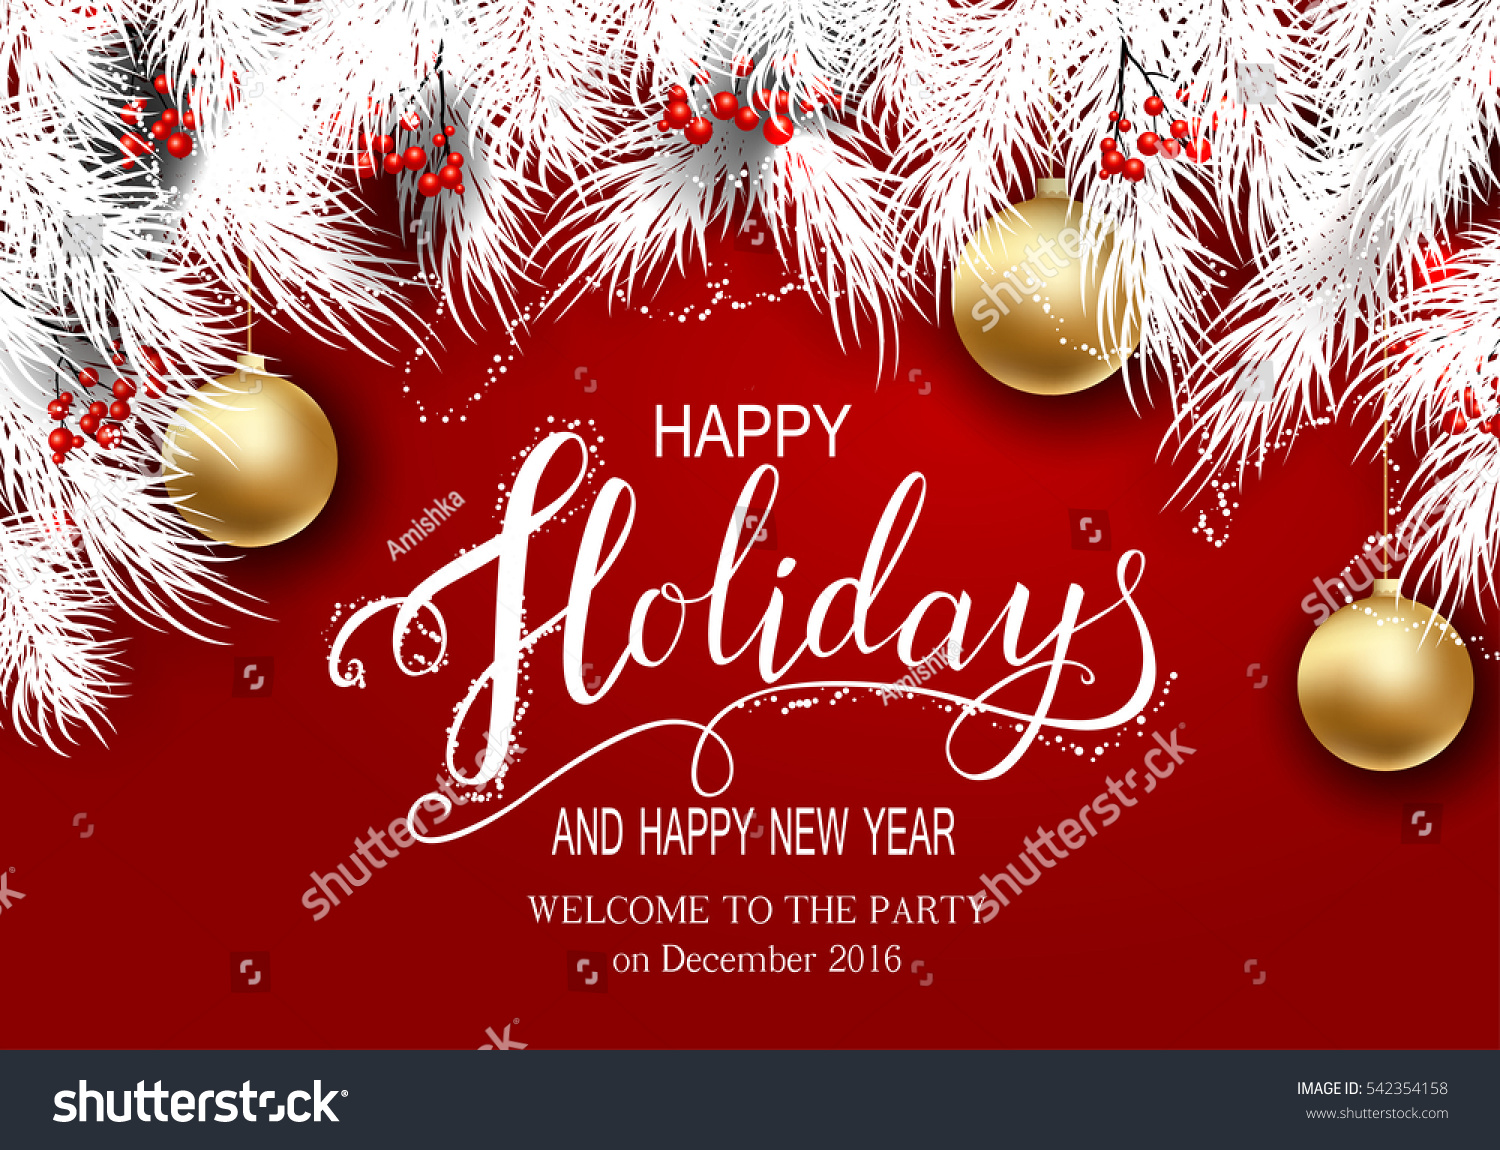 Happy Holidays Greeting Card Winter Season Stock Vector 542354158